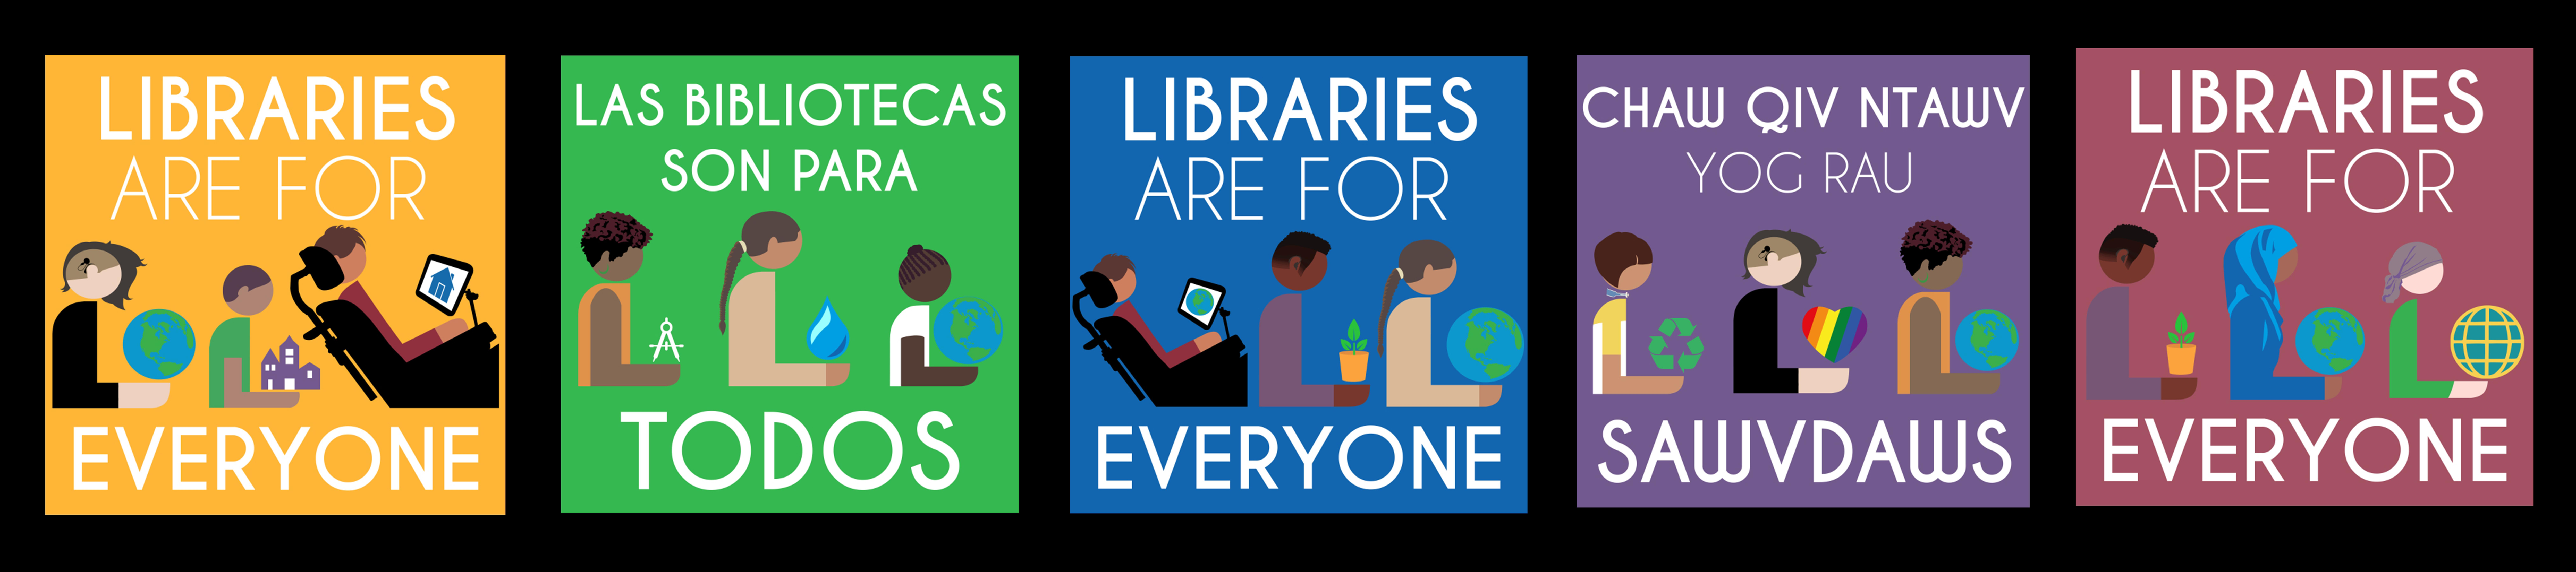 Libraries are for Everyone in several languages